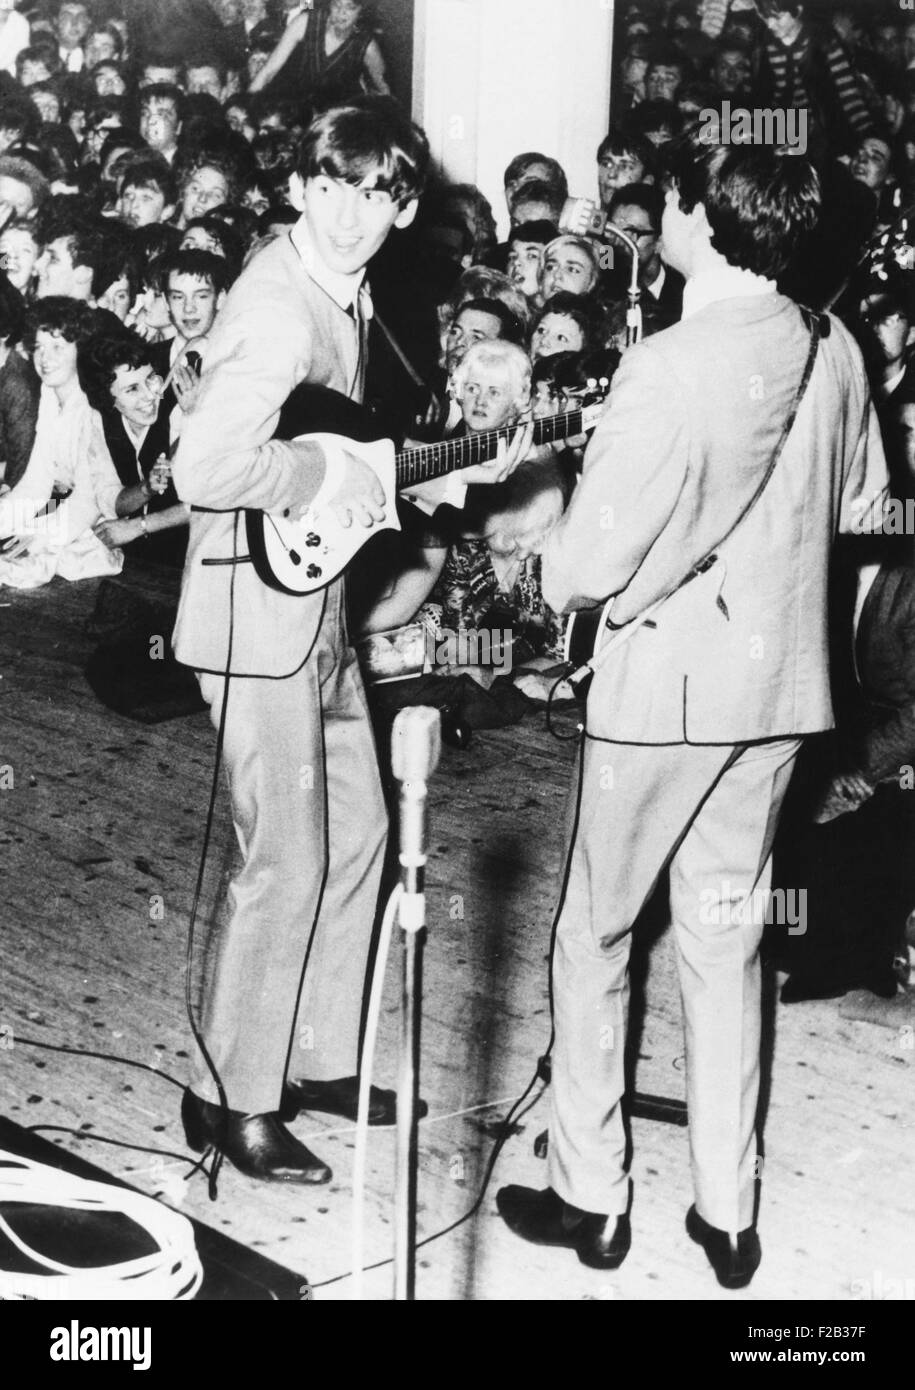 George Harrison (left) and Paul McCartney, of the Beatles perform in Manchester, England. Nov. 11, 1963. The original Stock Photo